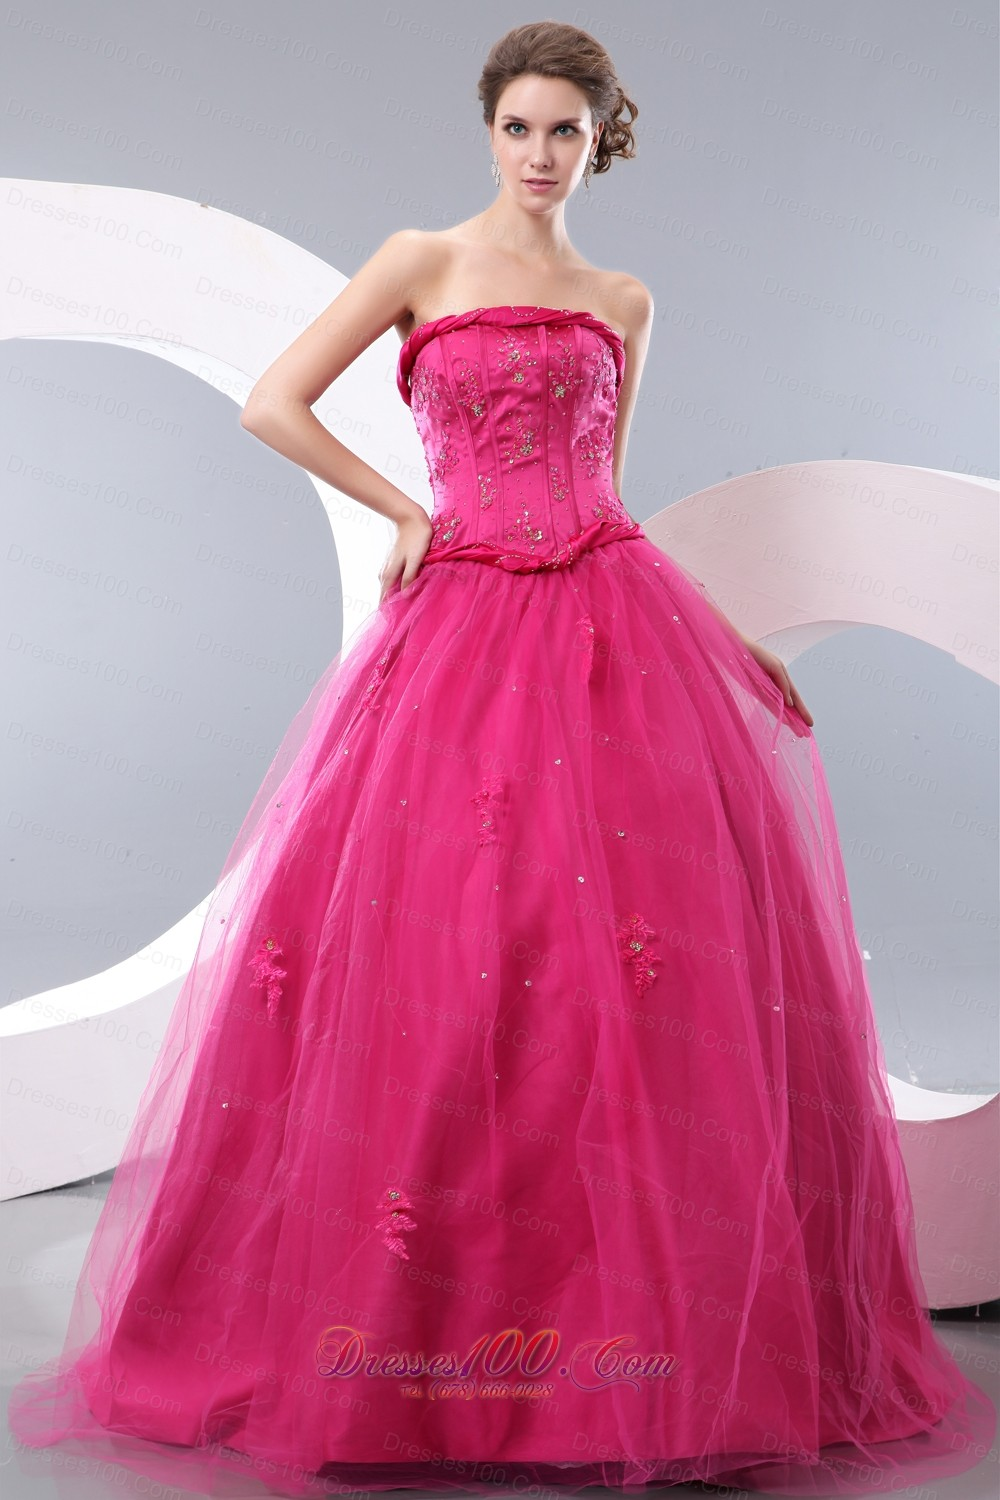 Rope Waistband Hot Pink Prom Dress with Tulle Layer |Cheap ...